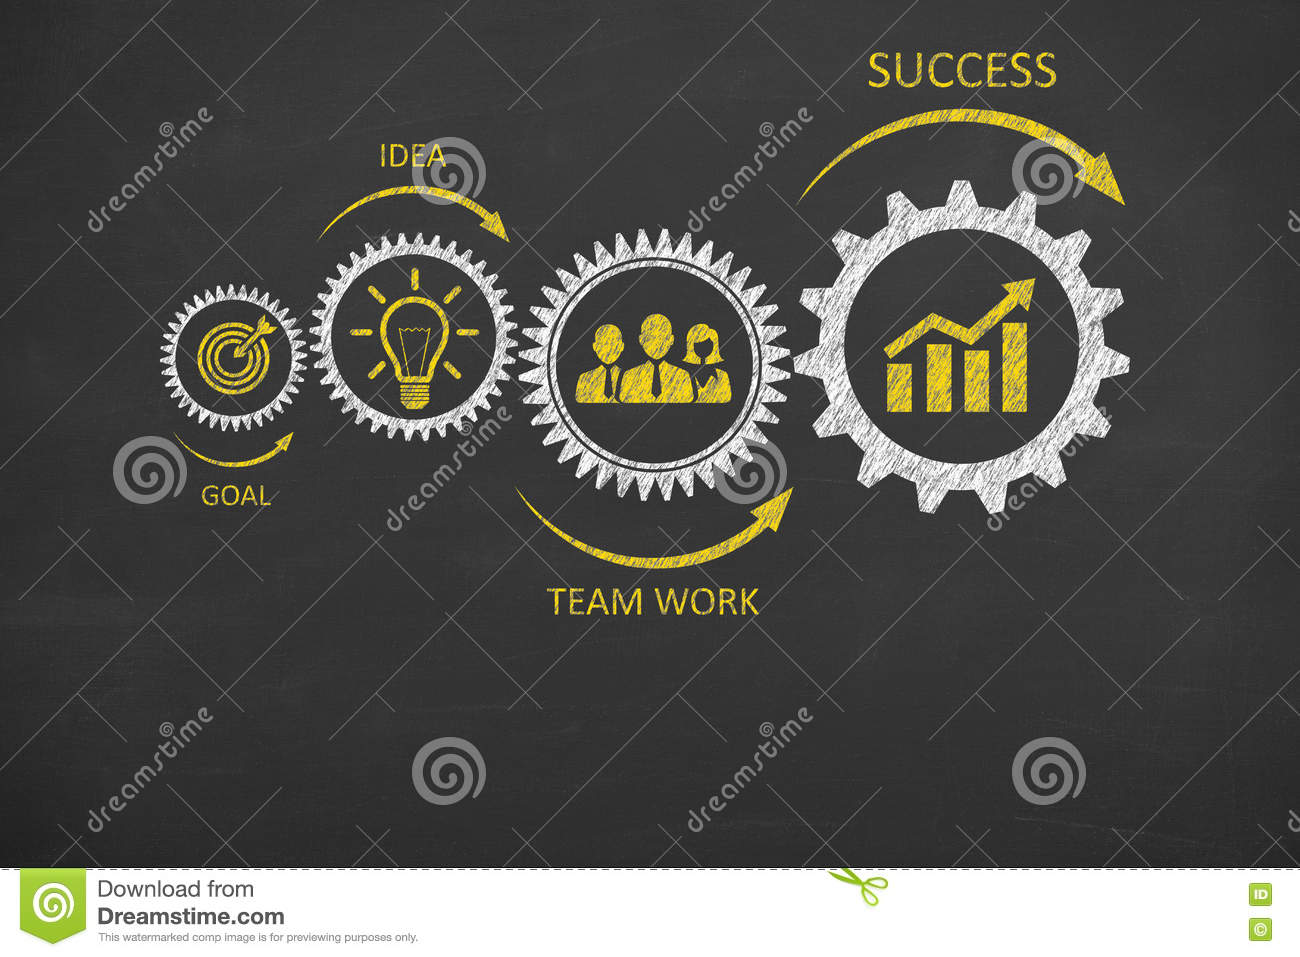 Gear Team Work Success Concepts on Blackboard